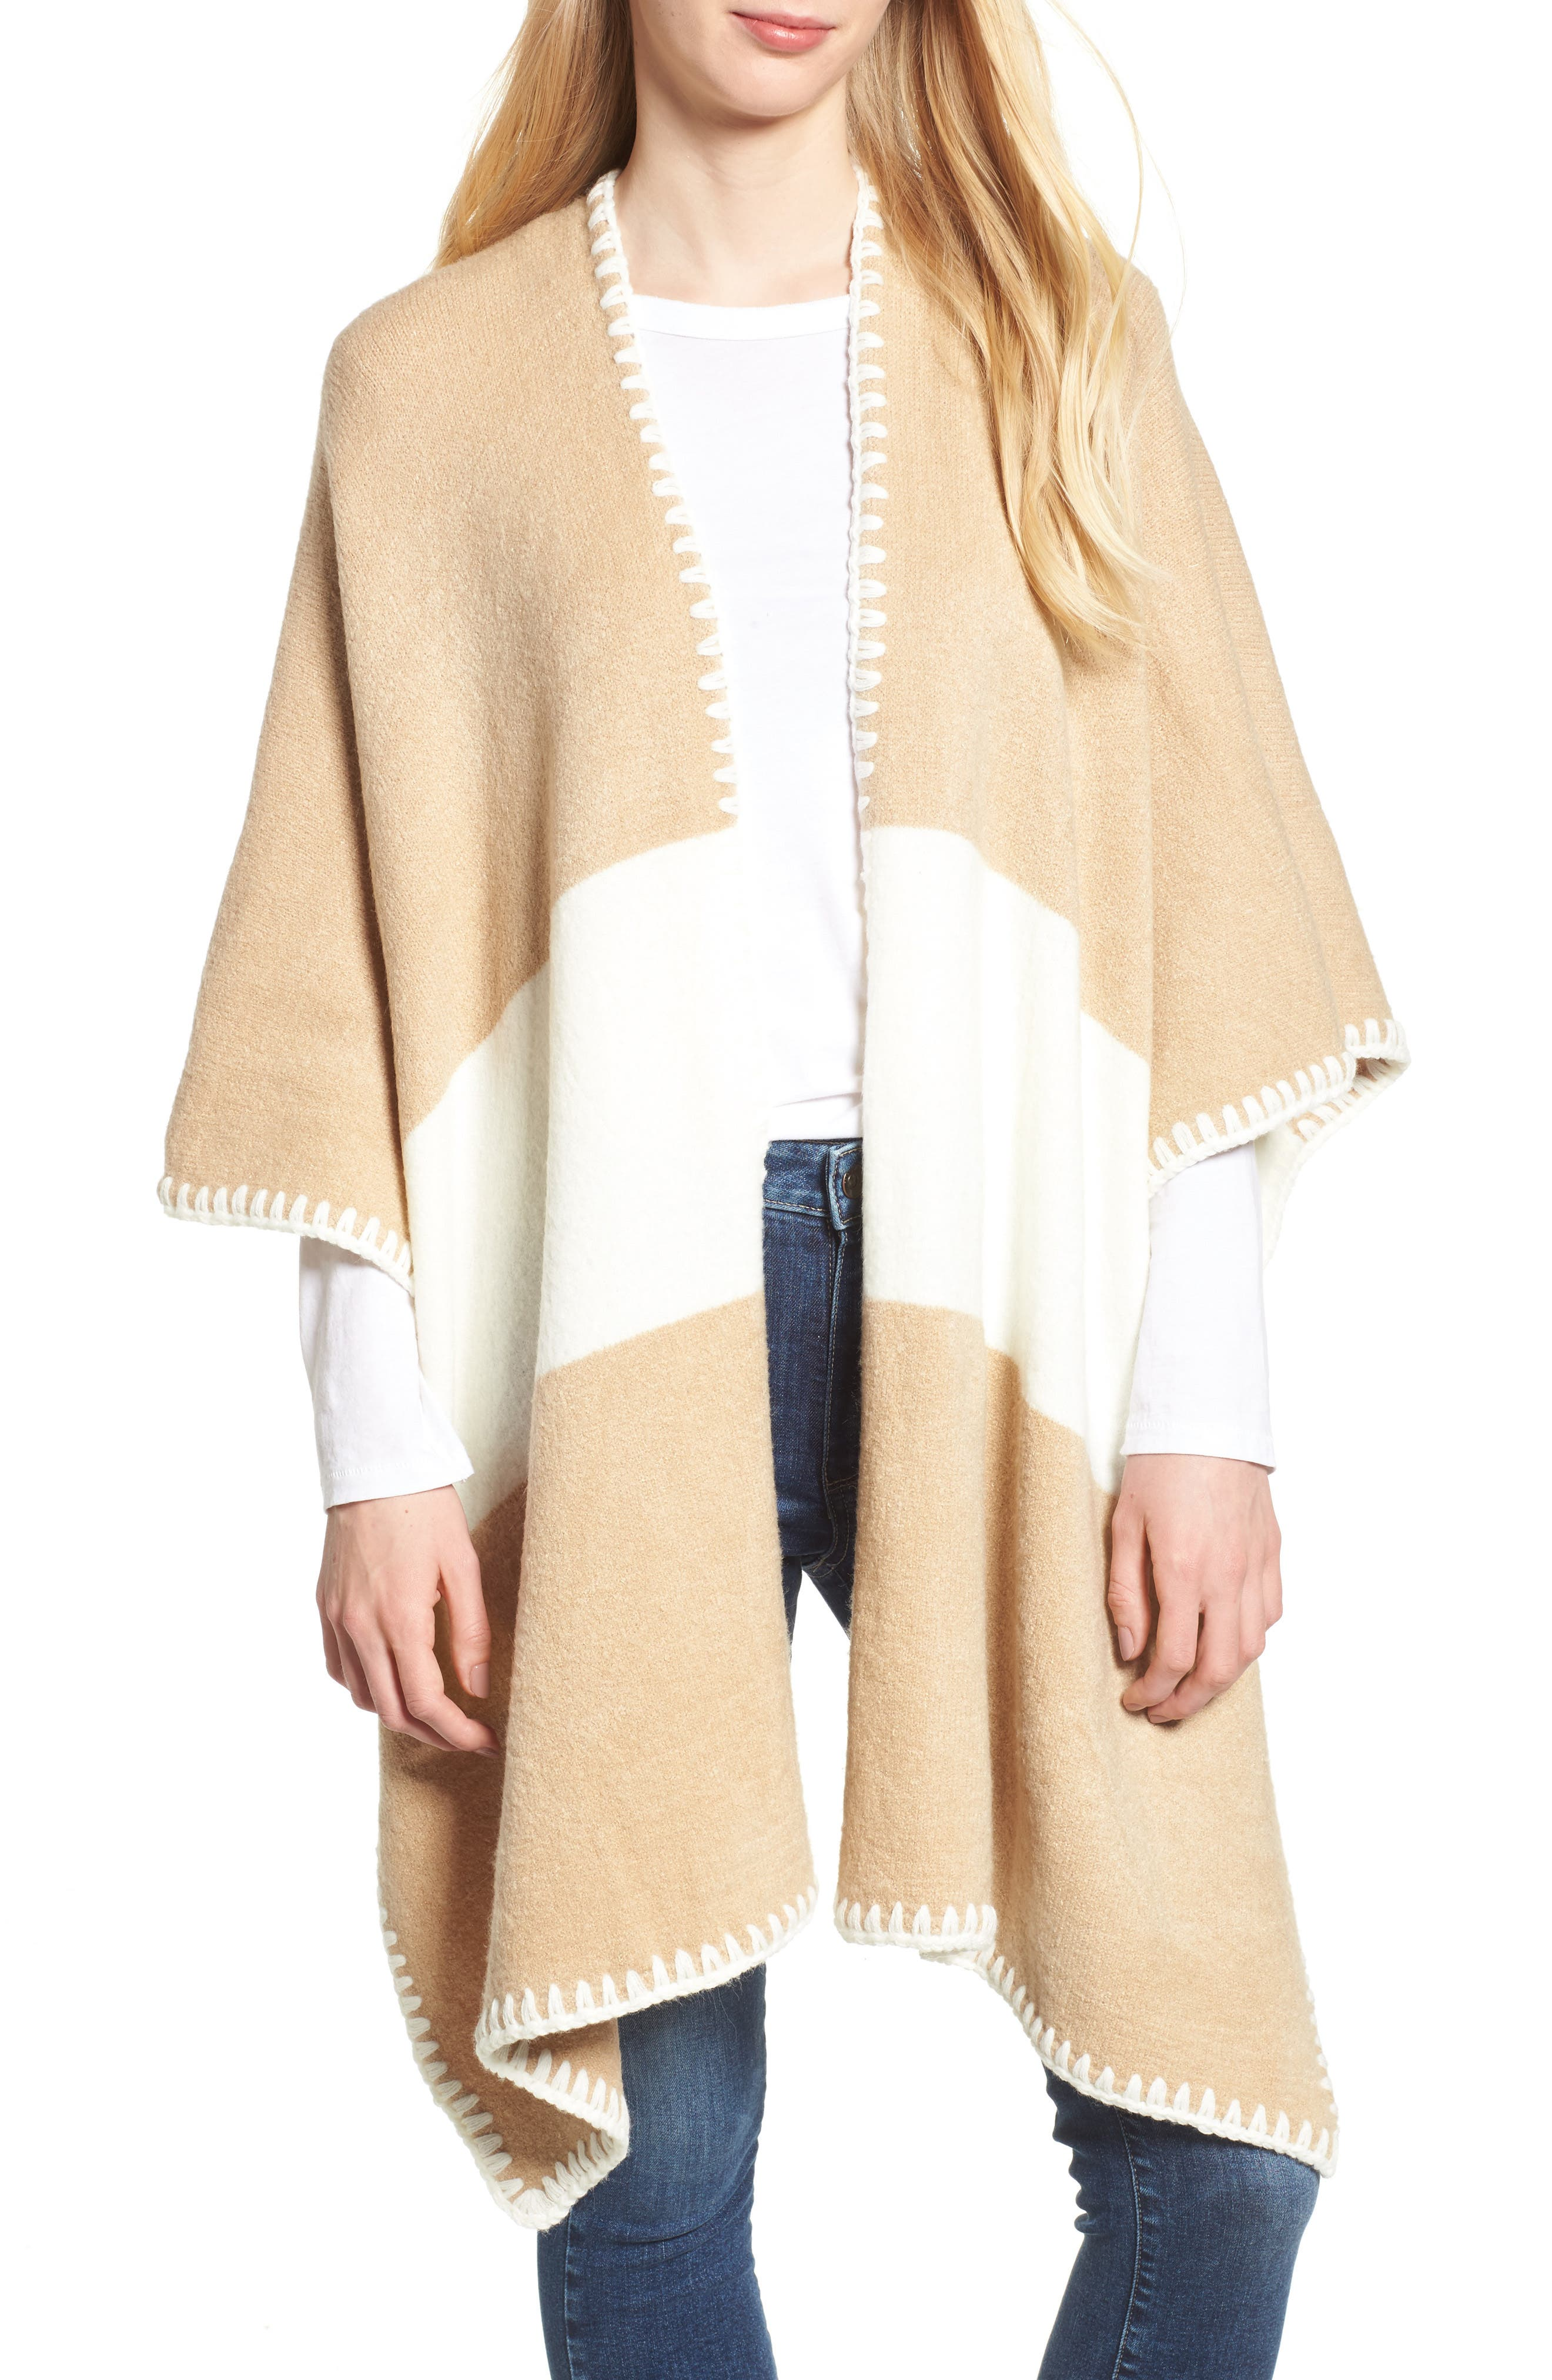 Bishop + Young Whipstitched Poncho,                         Main,                         color, Camel